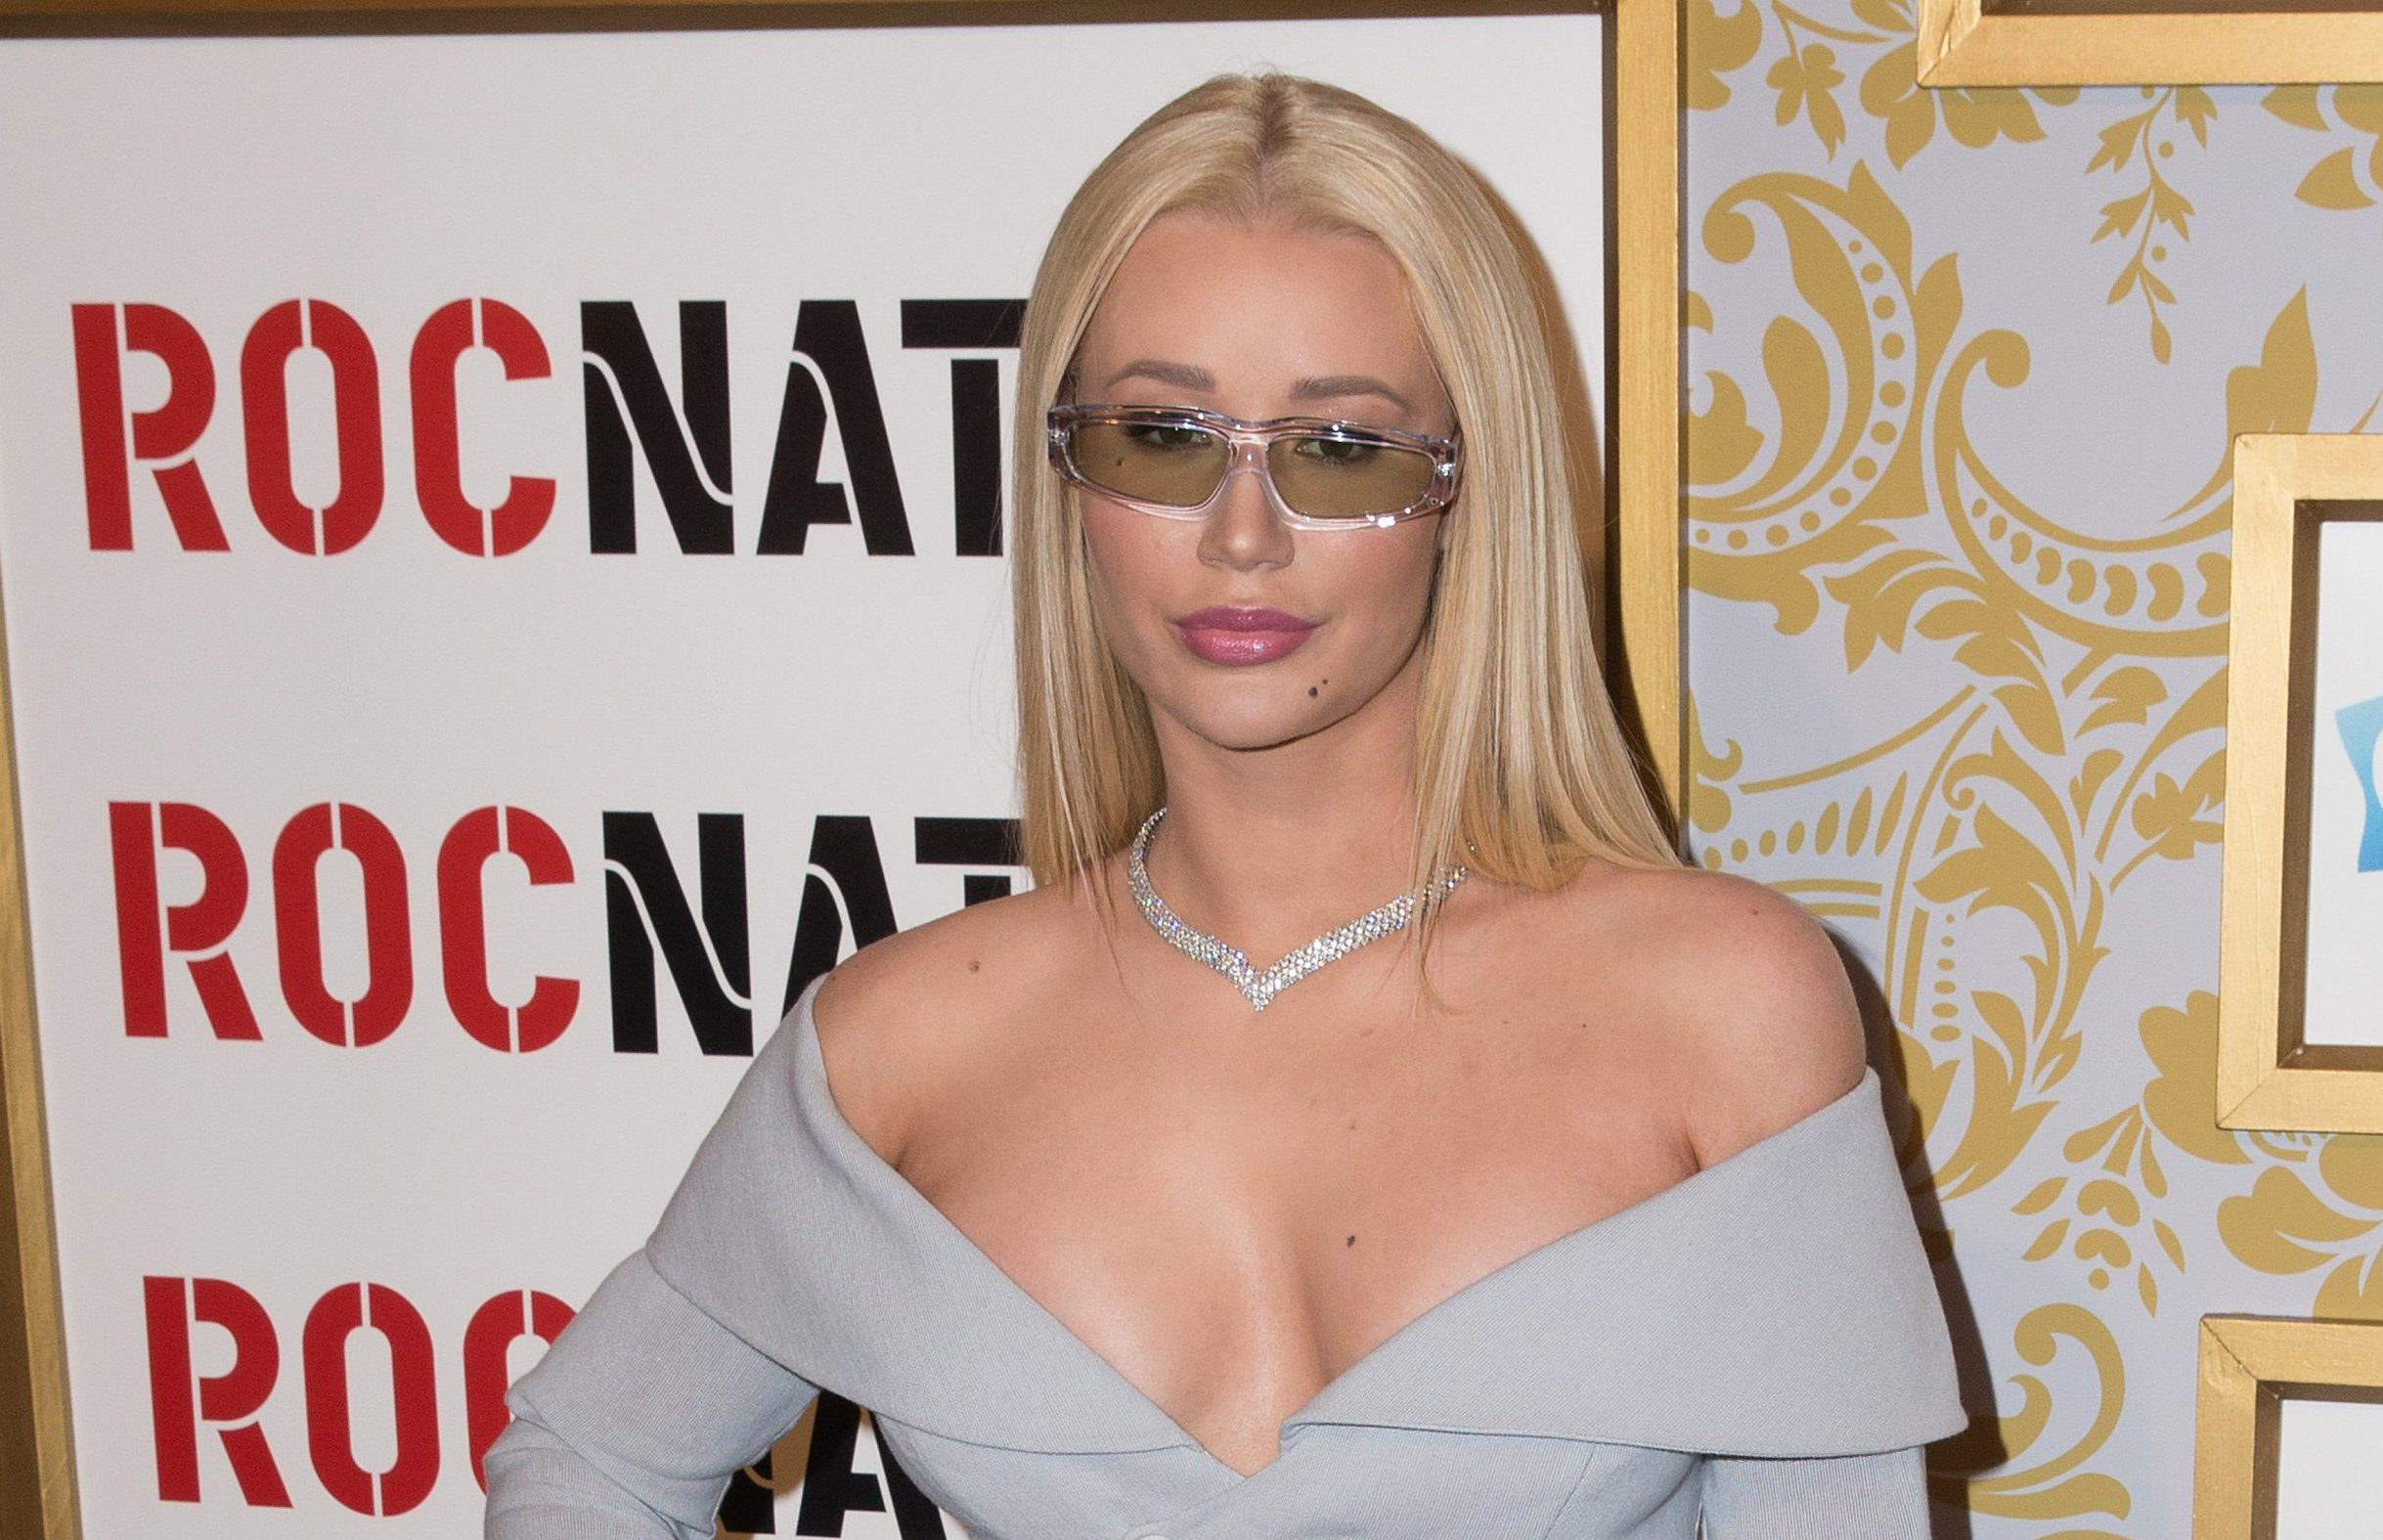 Iggy Azalea stands by advice of giving 'a card and p***y' for Valentine's Day